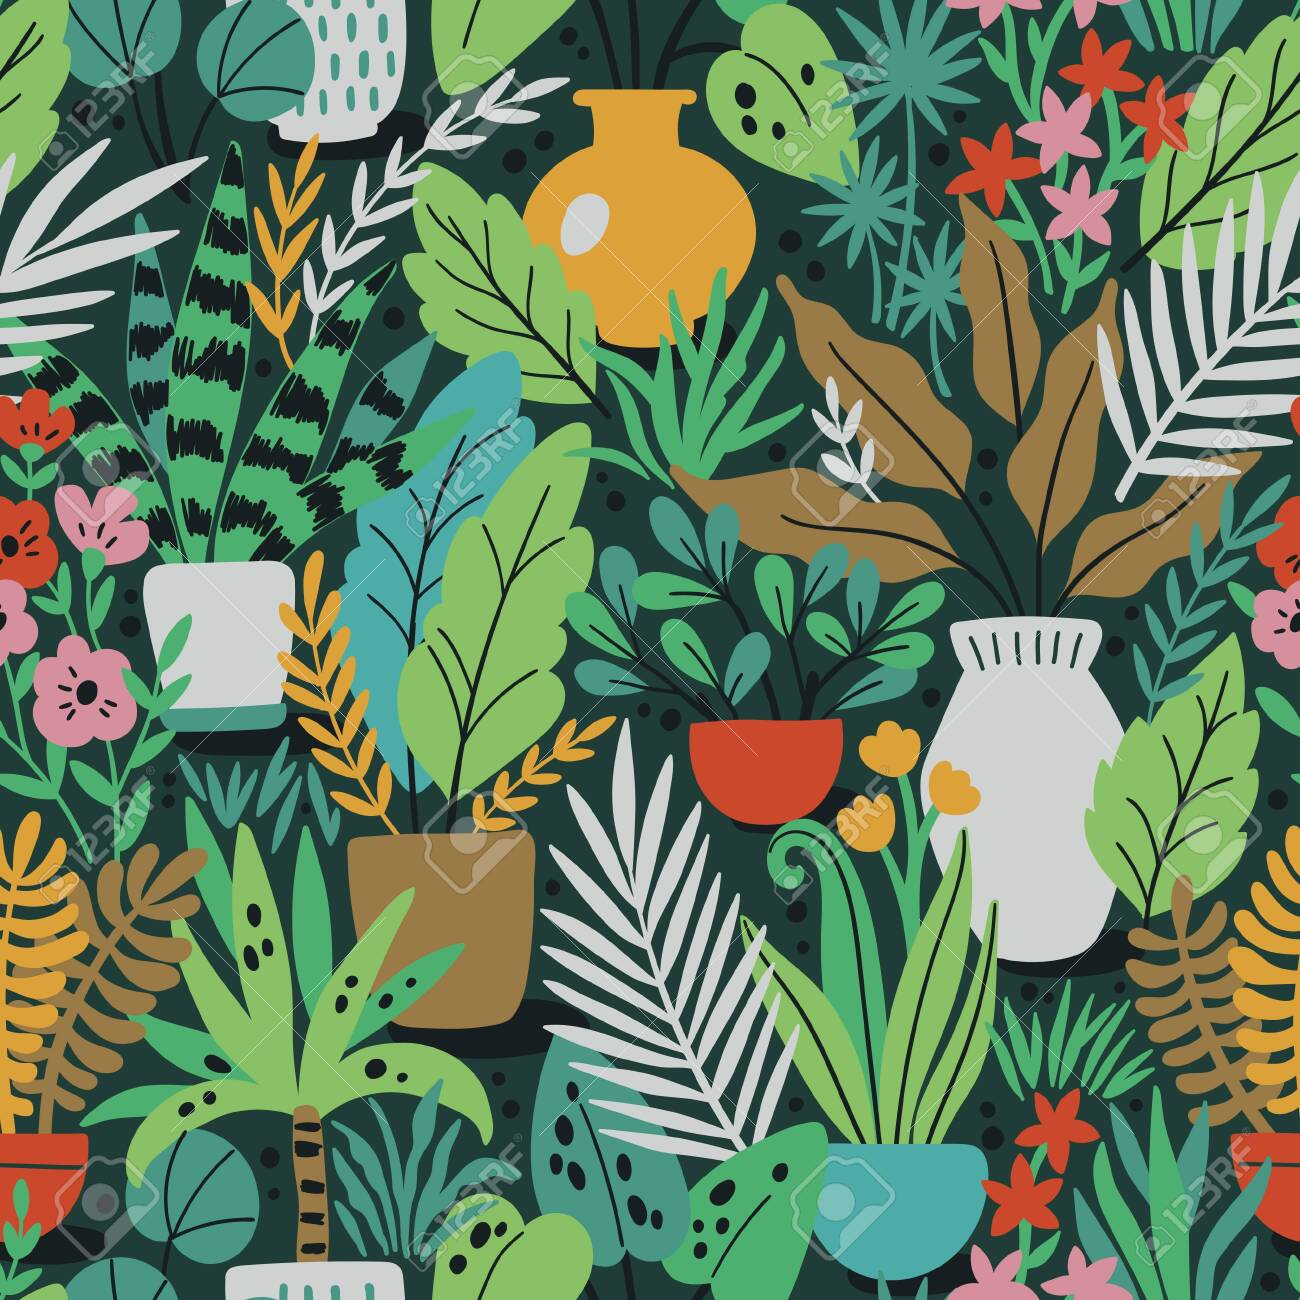 Home plants in ceramic pots vector seamless pattern. Domestic flowers colorful texture. Exotic houseplants in flowerpots illustration - 145775830